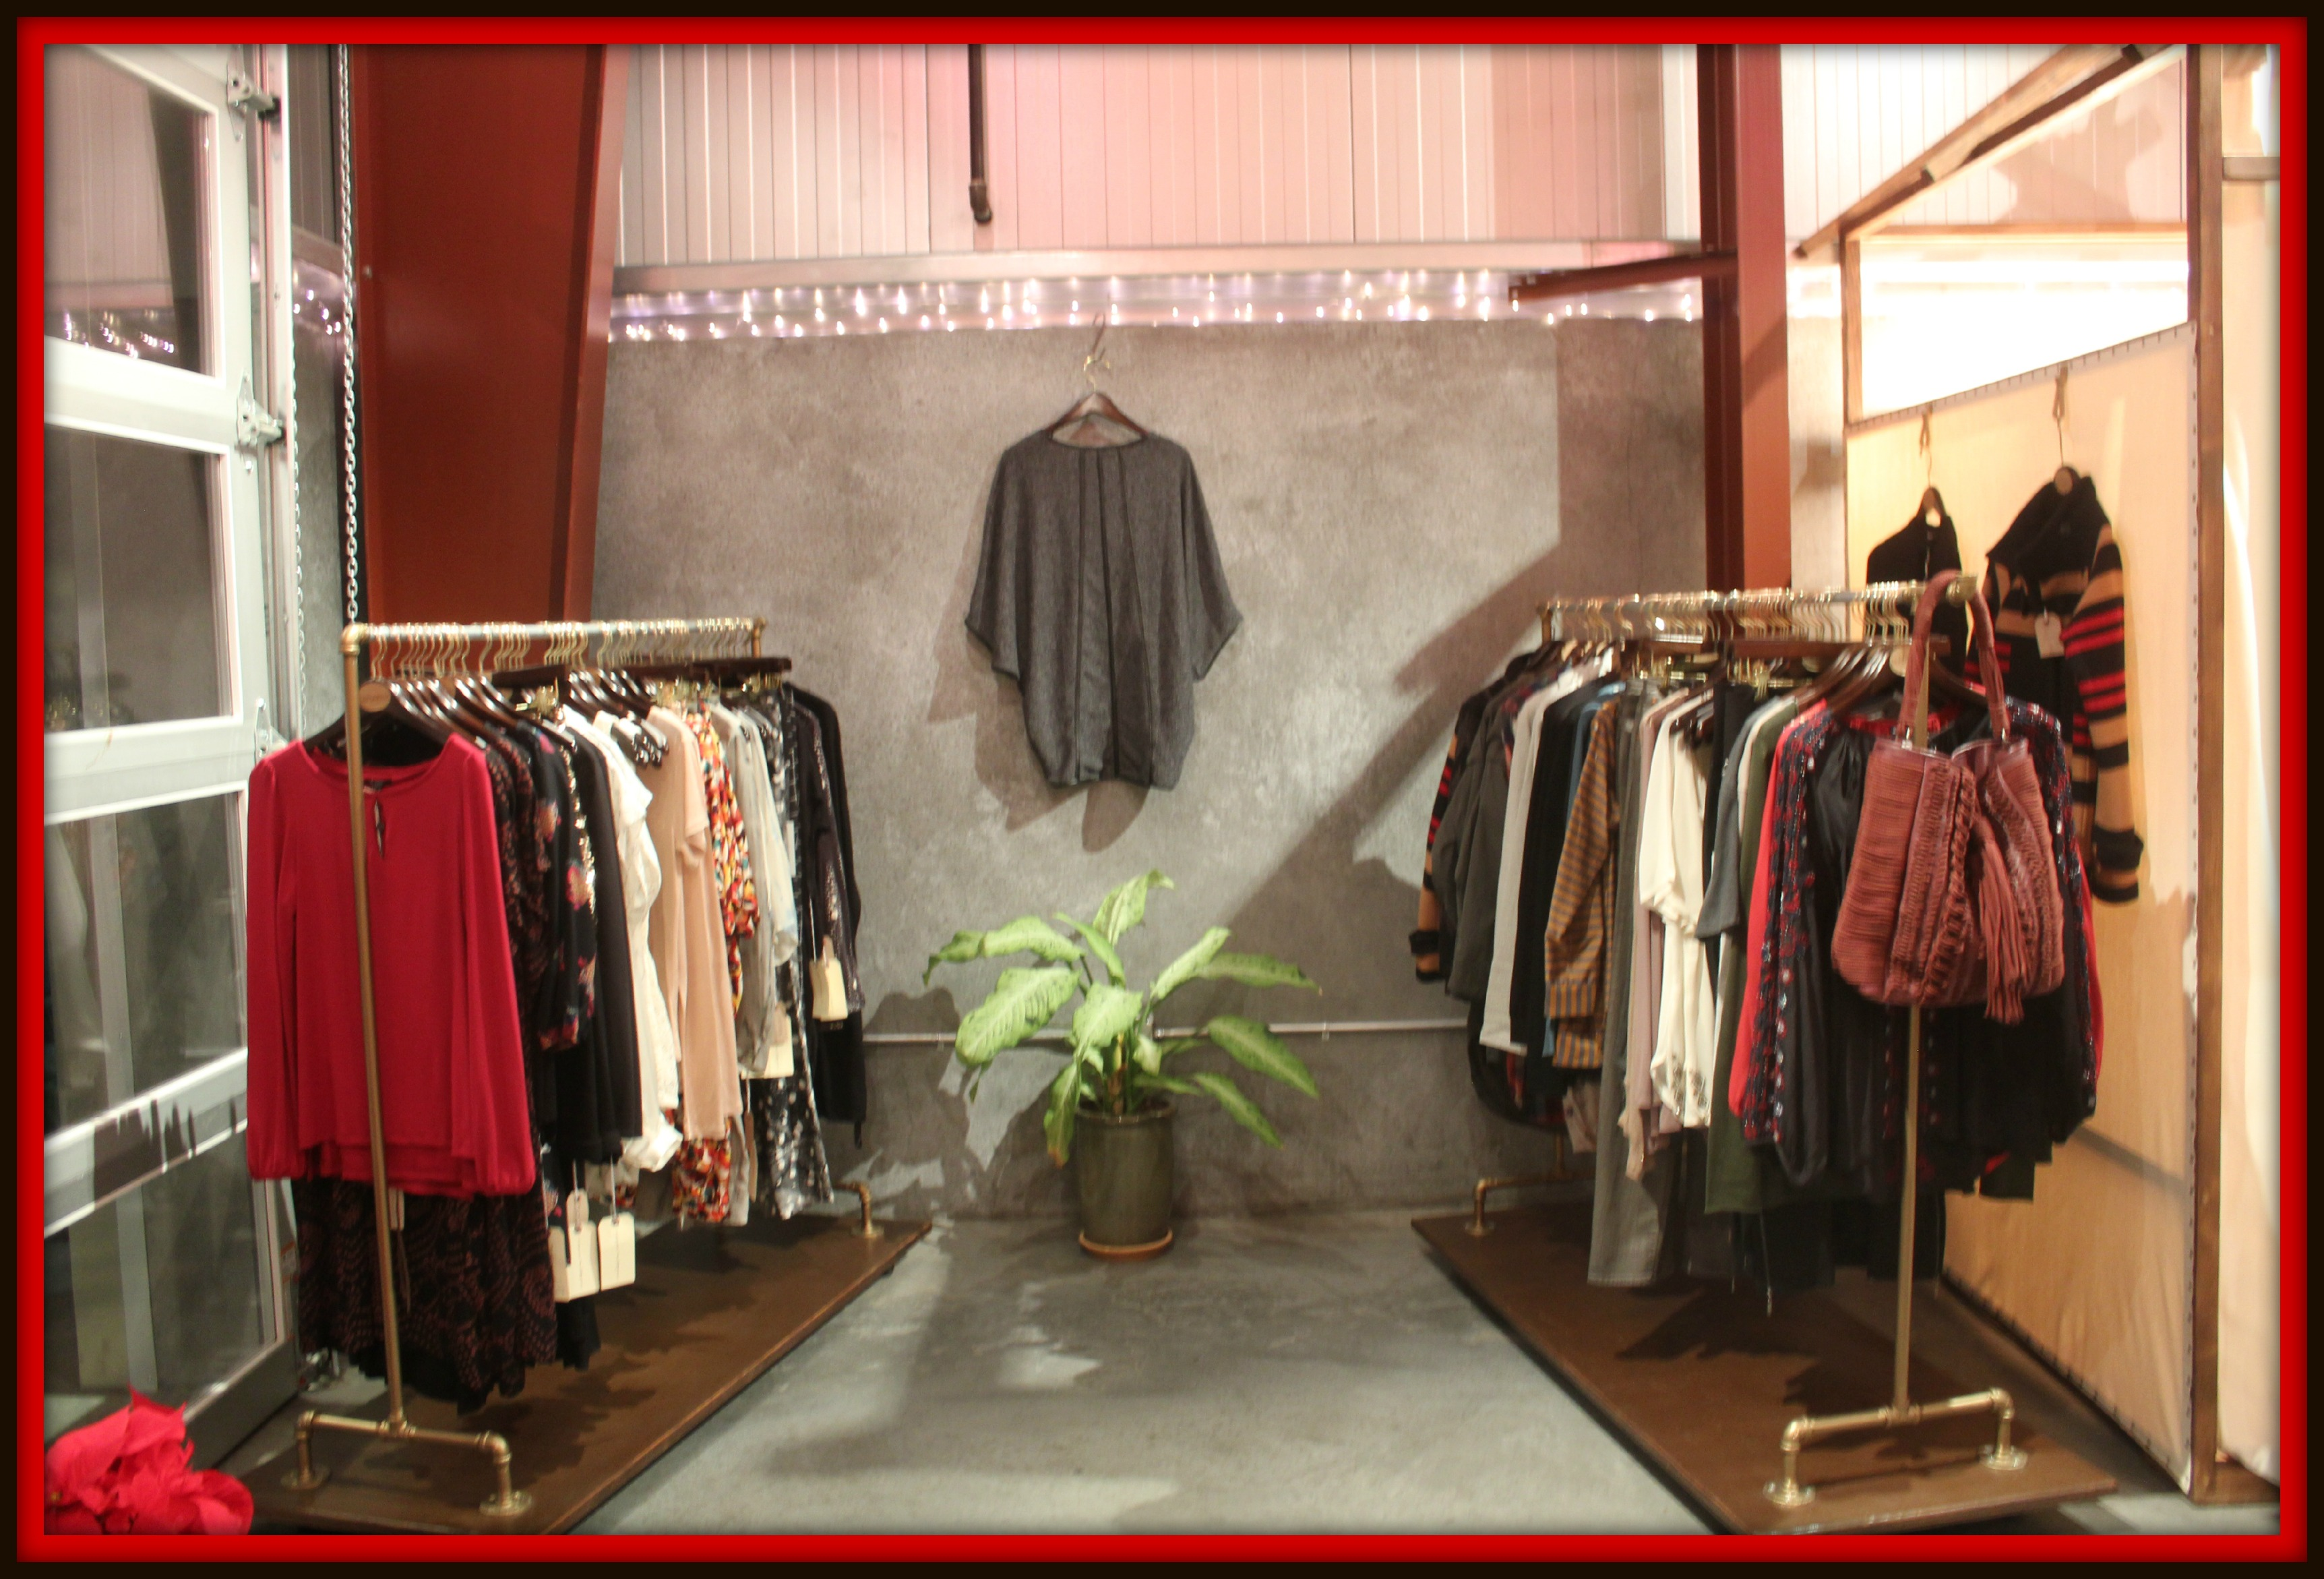 Travel clothing store. Girls clothing stores